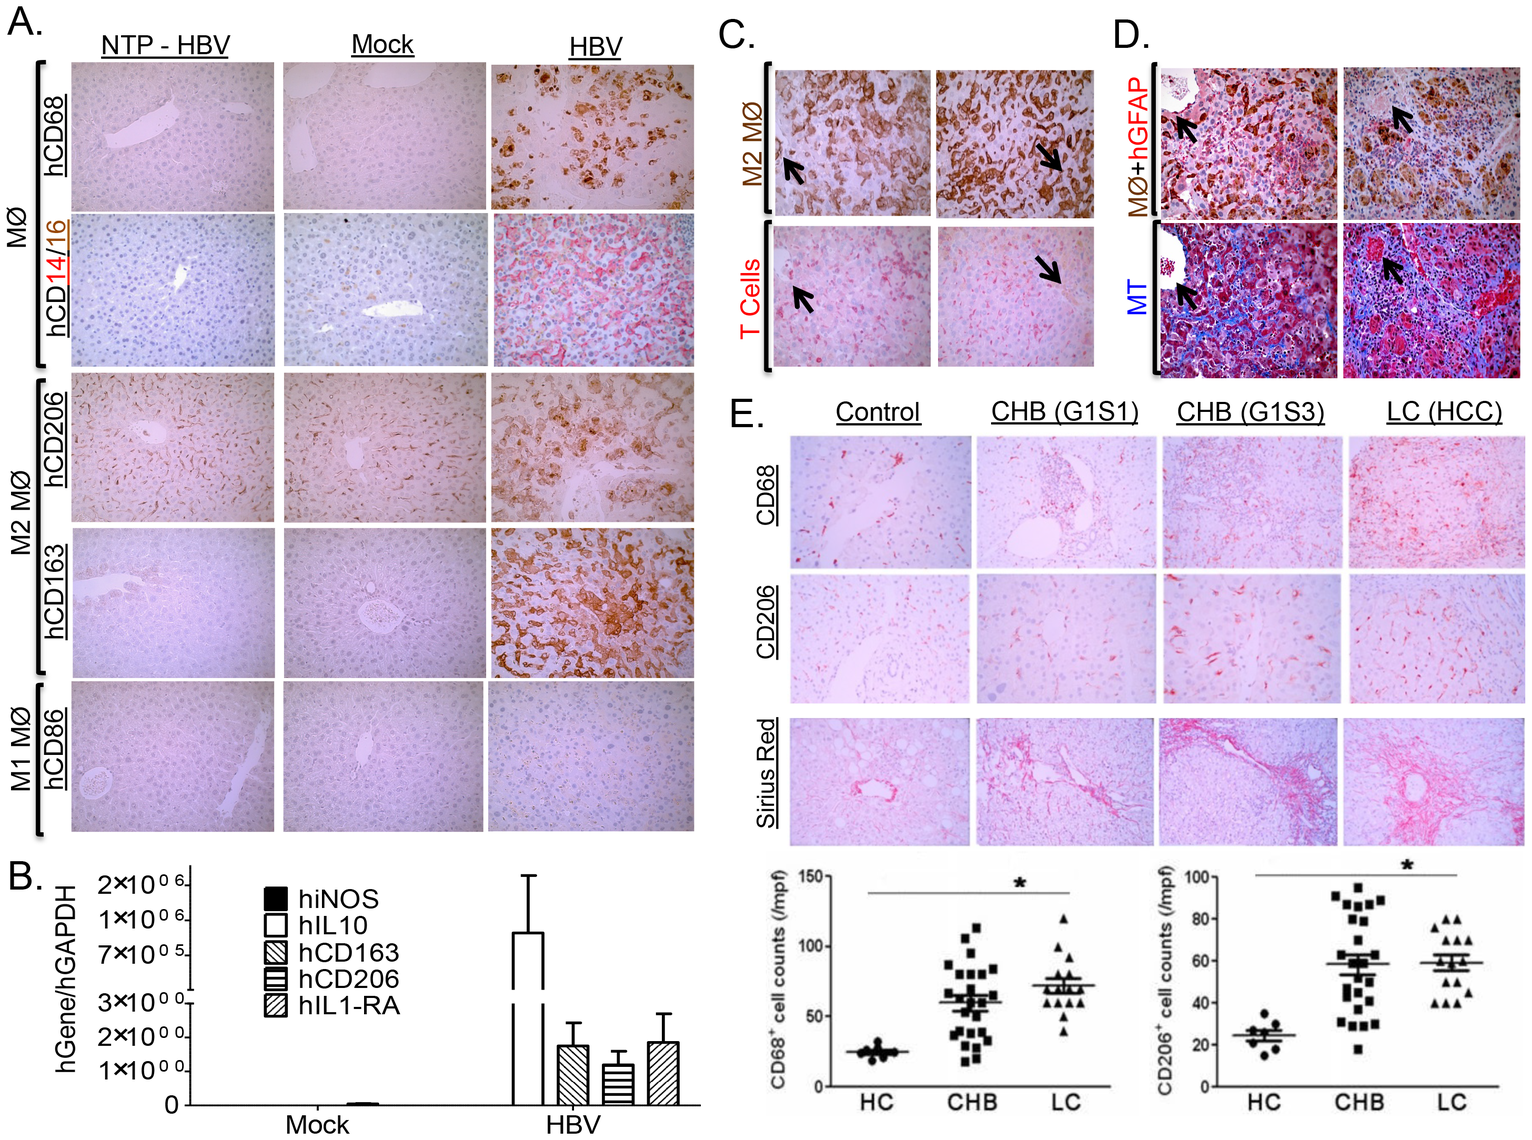 HBV-induced liver disease and immune impairment is associated with M2-like macrophage activation.